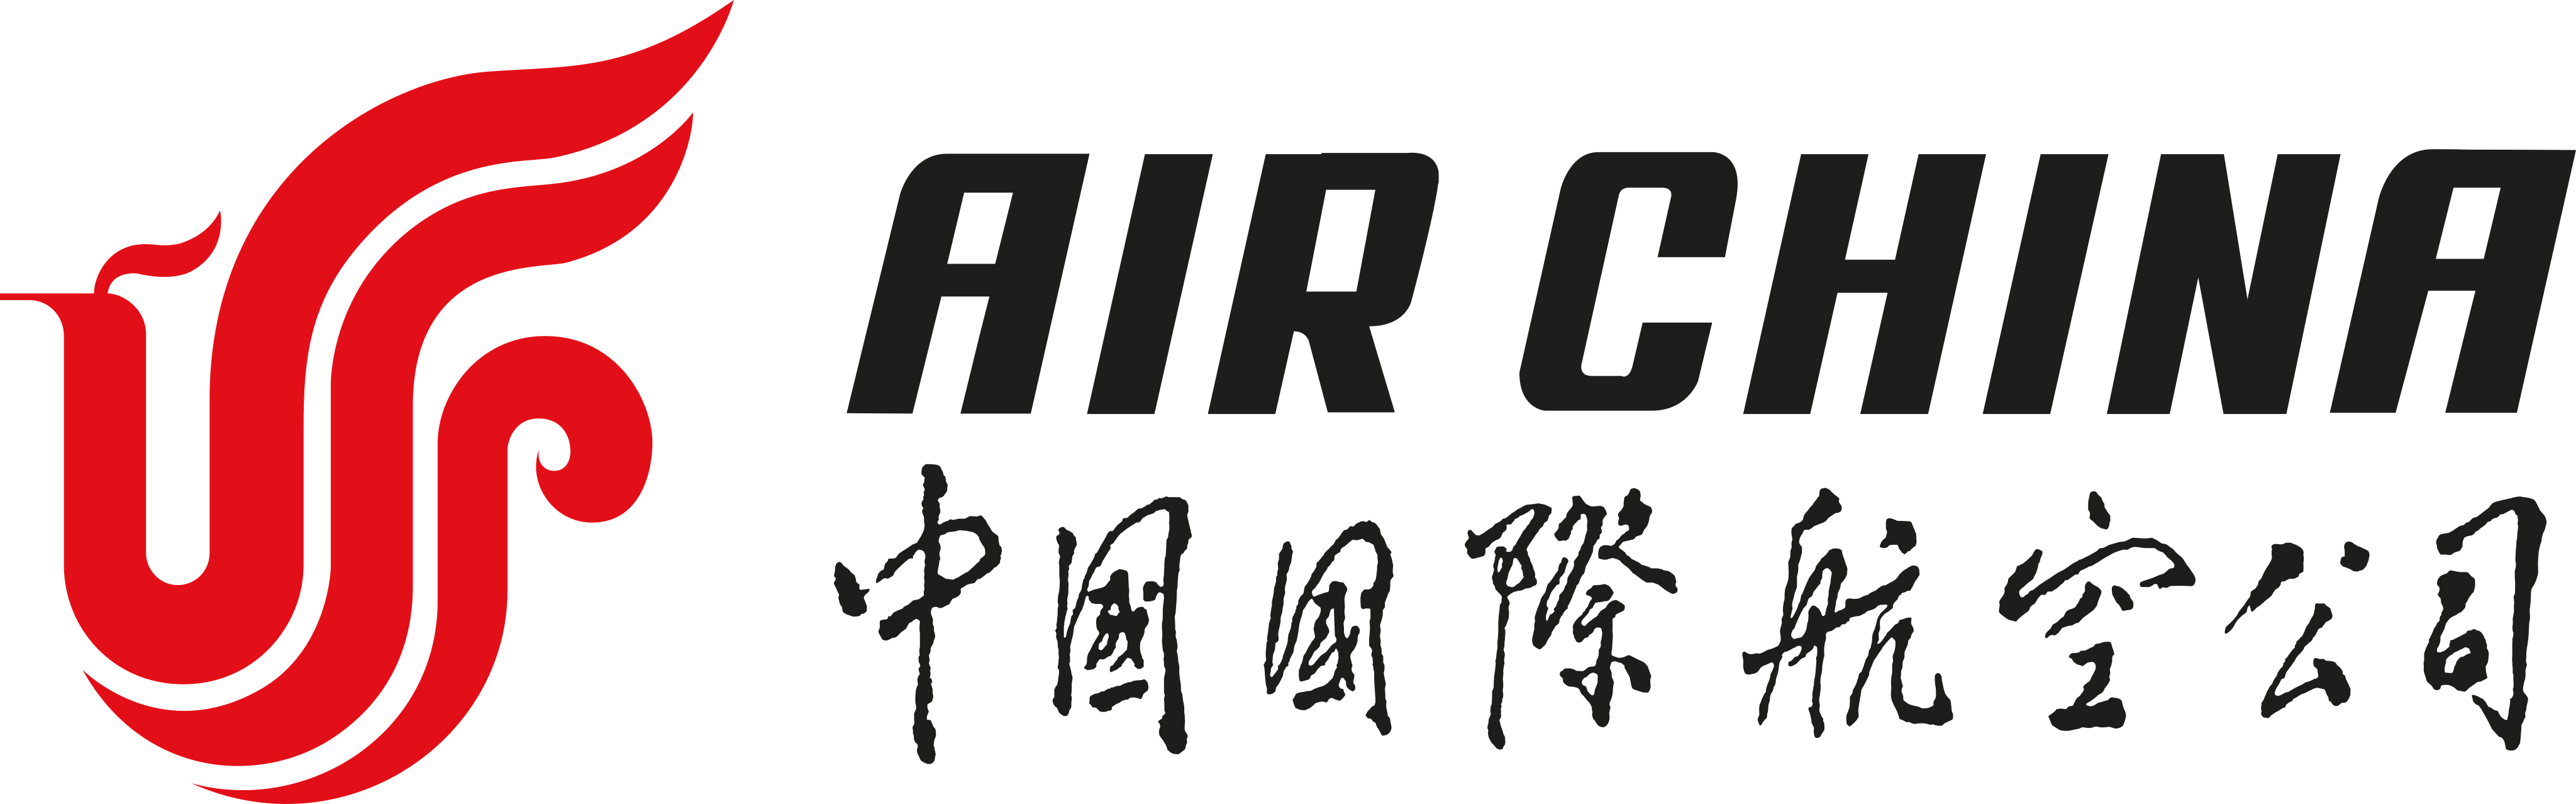 air china logo 1 - Air China Logo